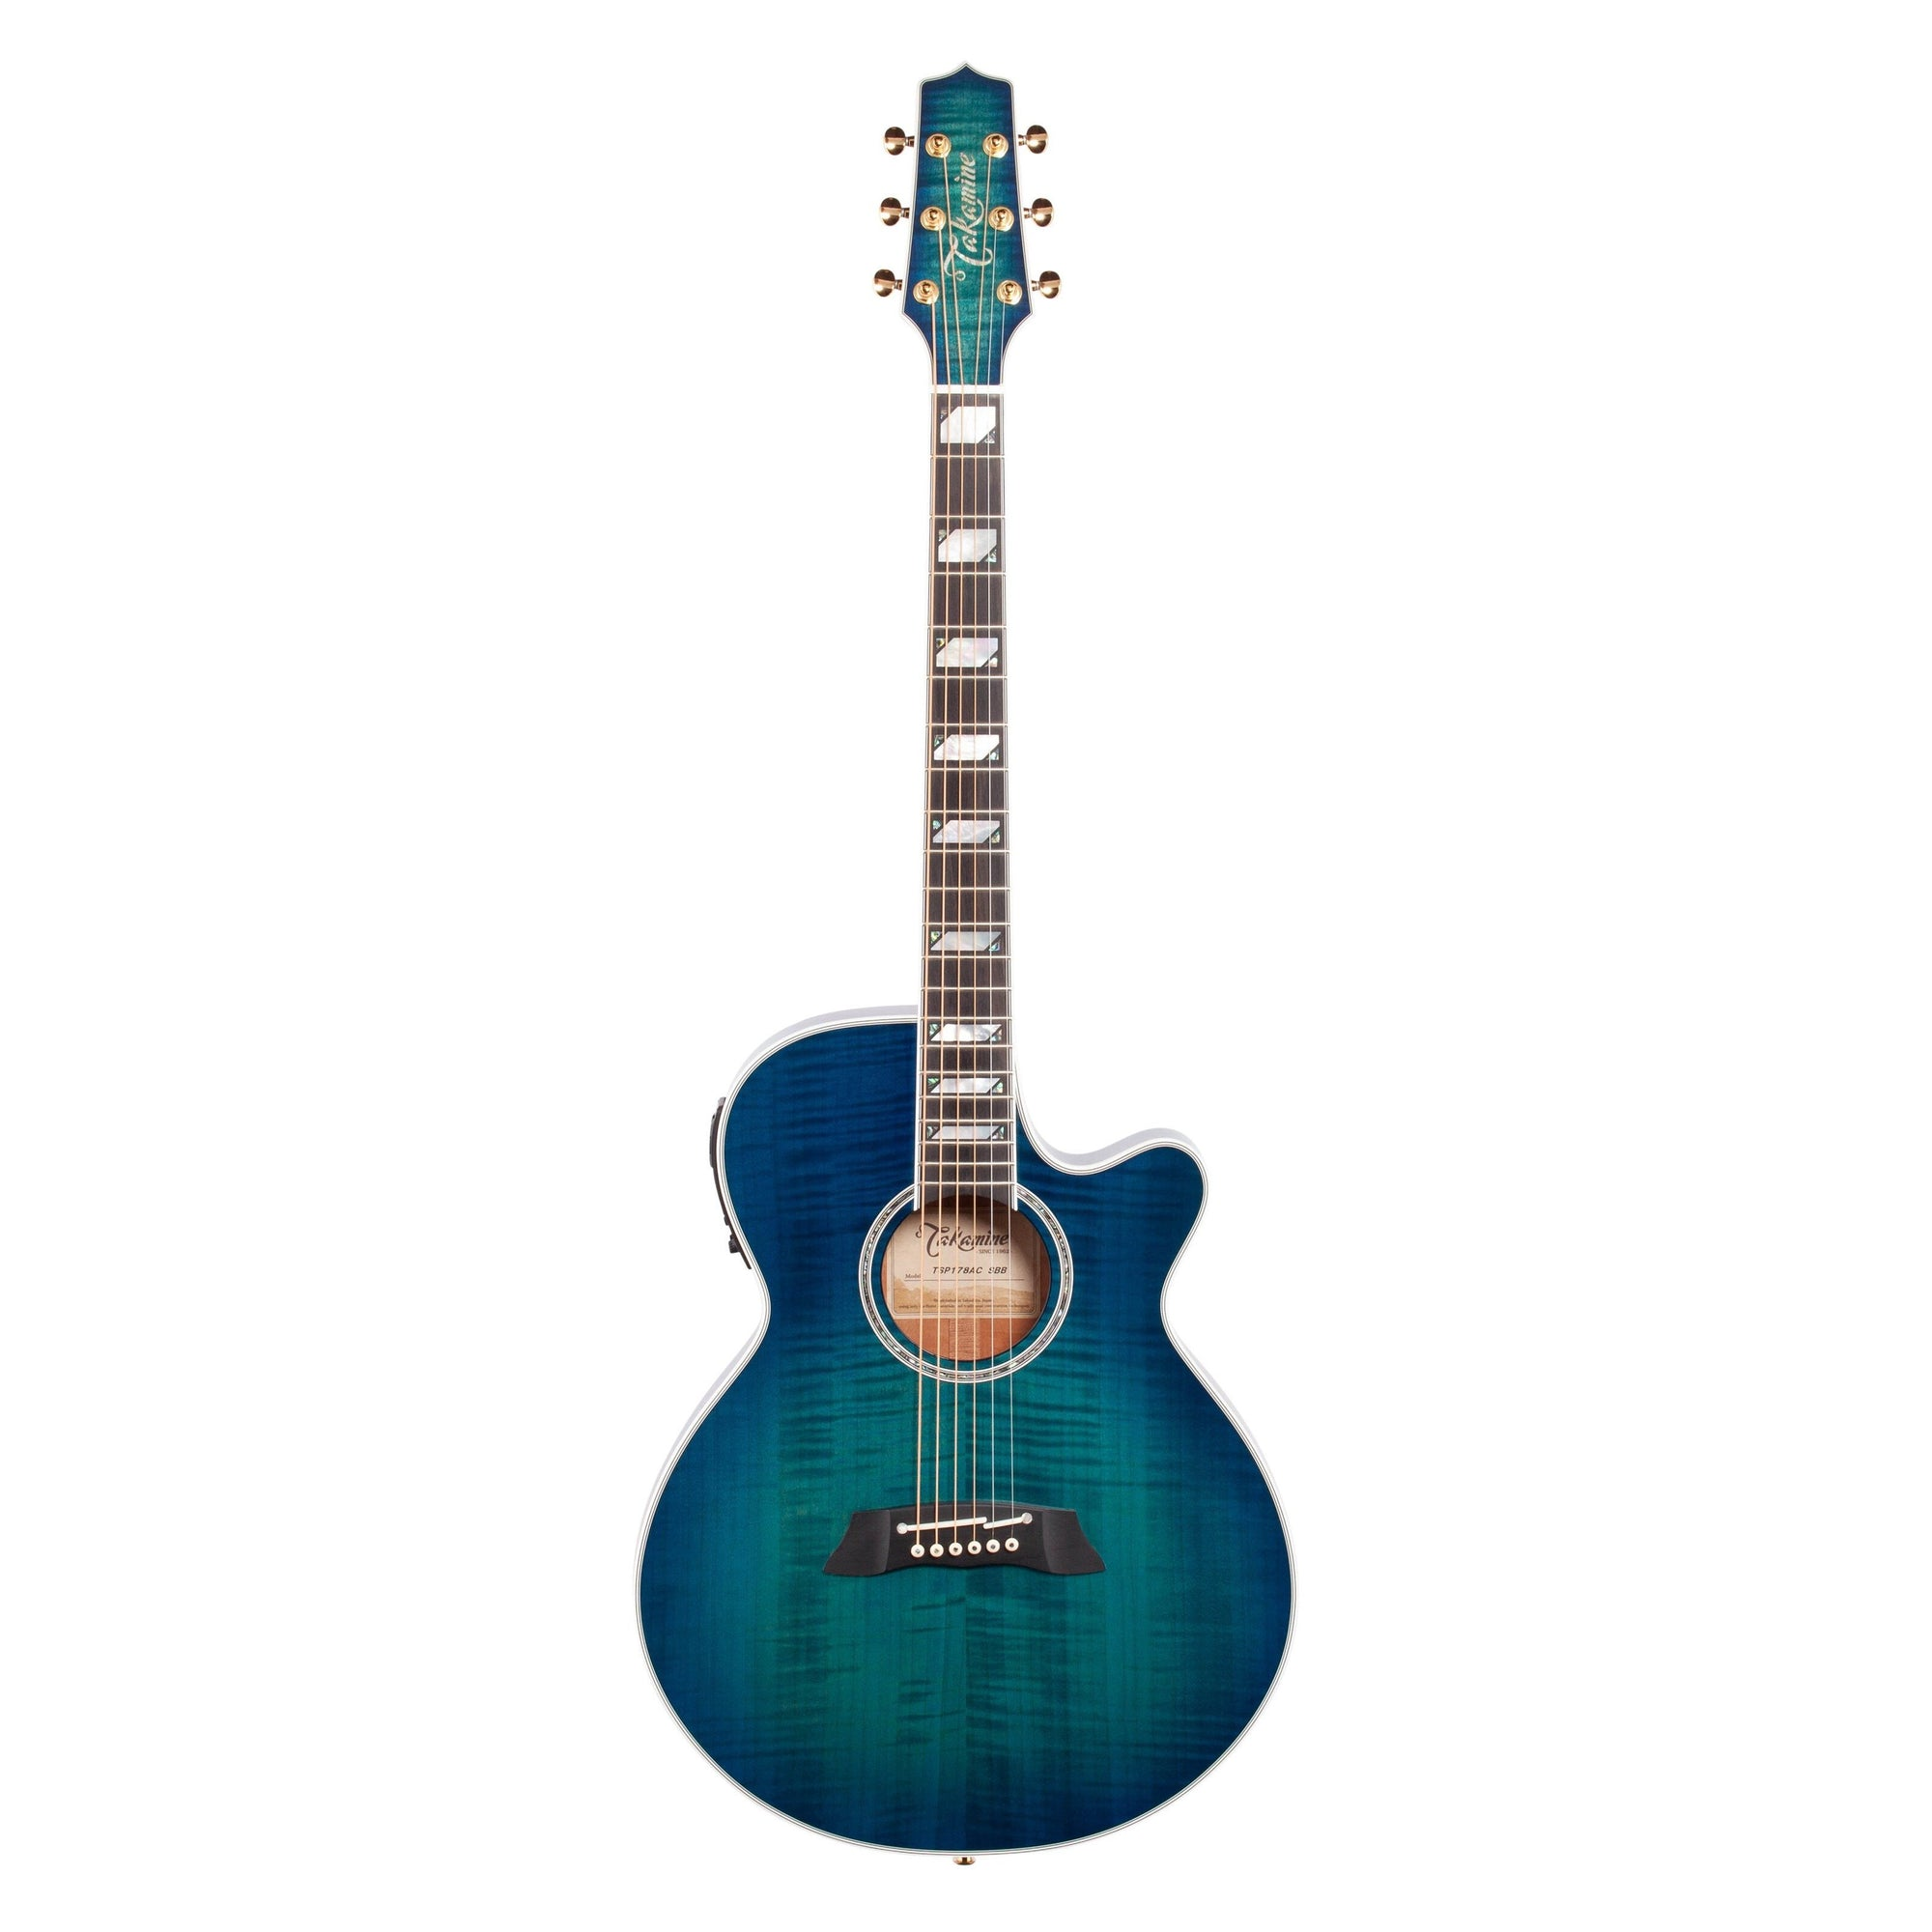 Takamine TSP178AC Thinline Acoustic-Electric Guitar (with Gig Bag), Blue Burst